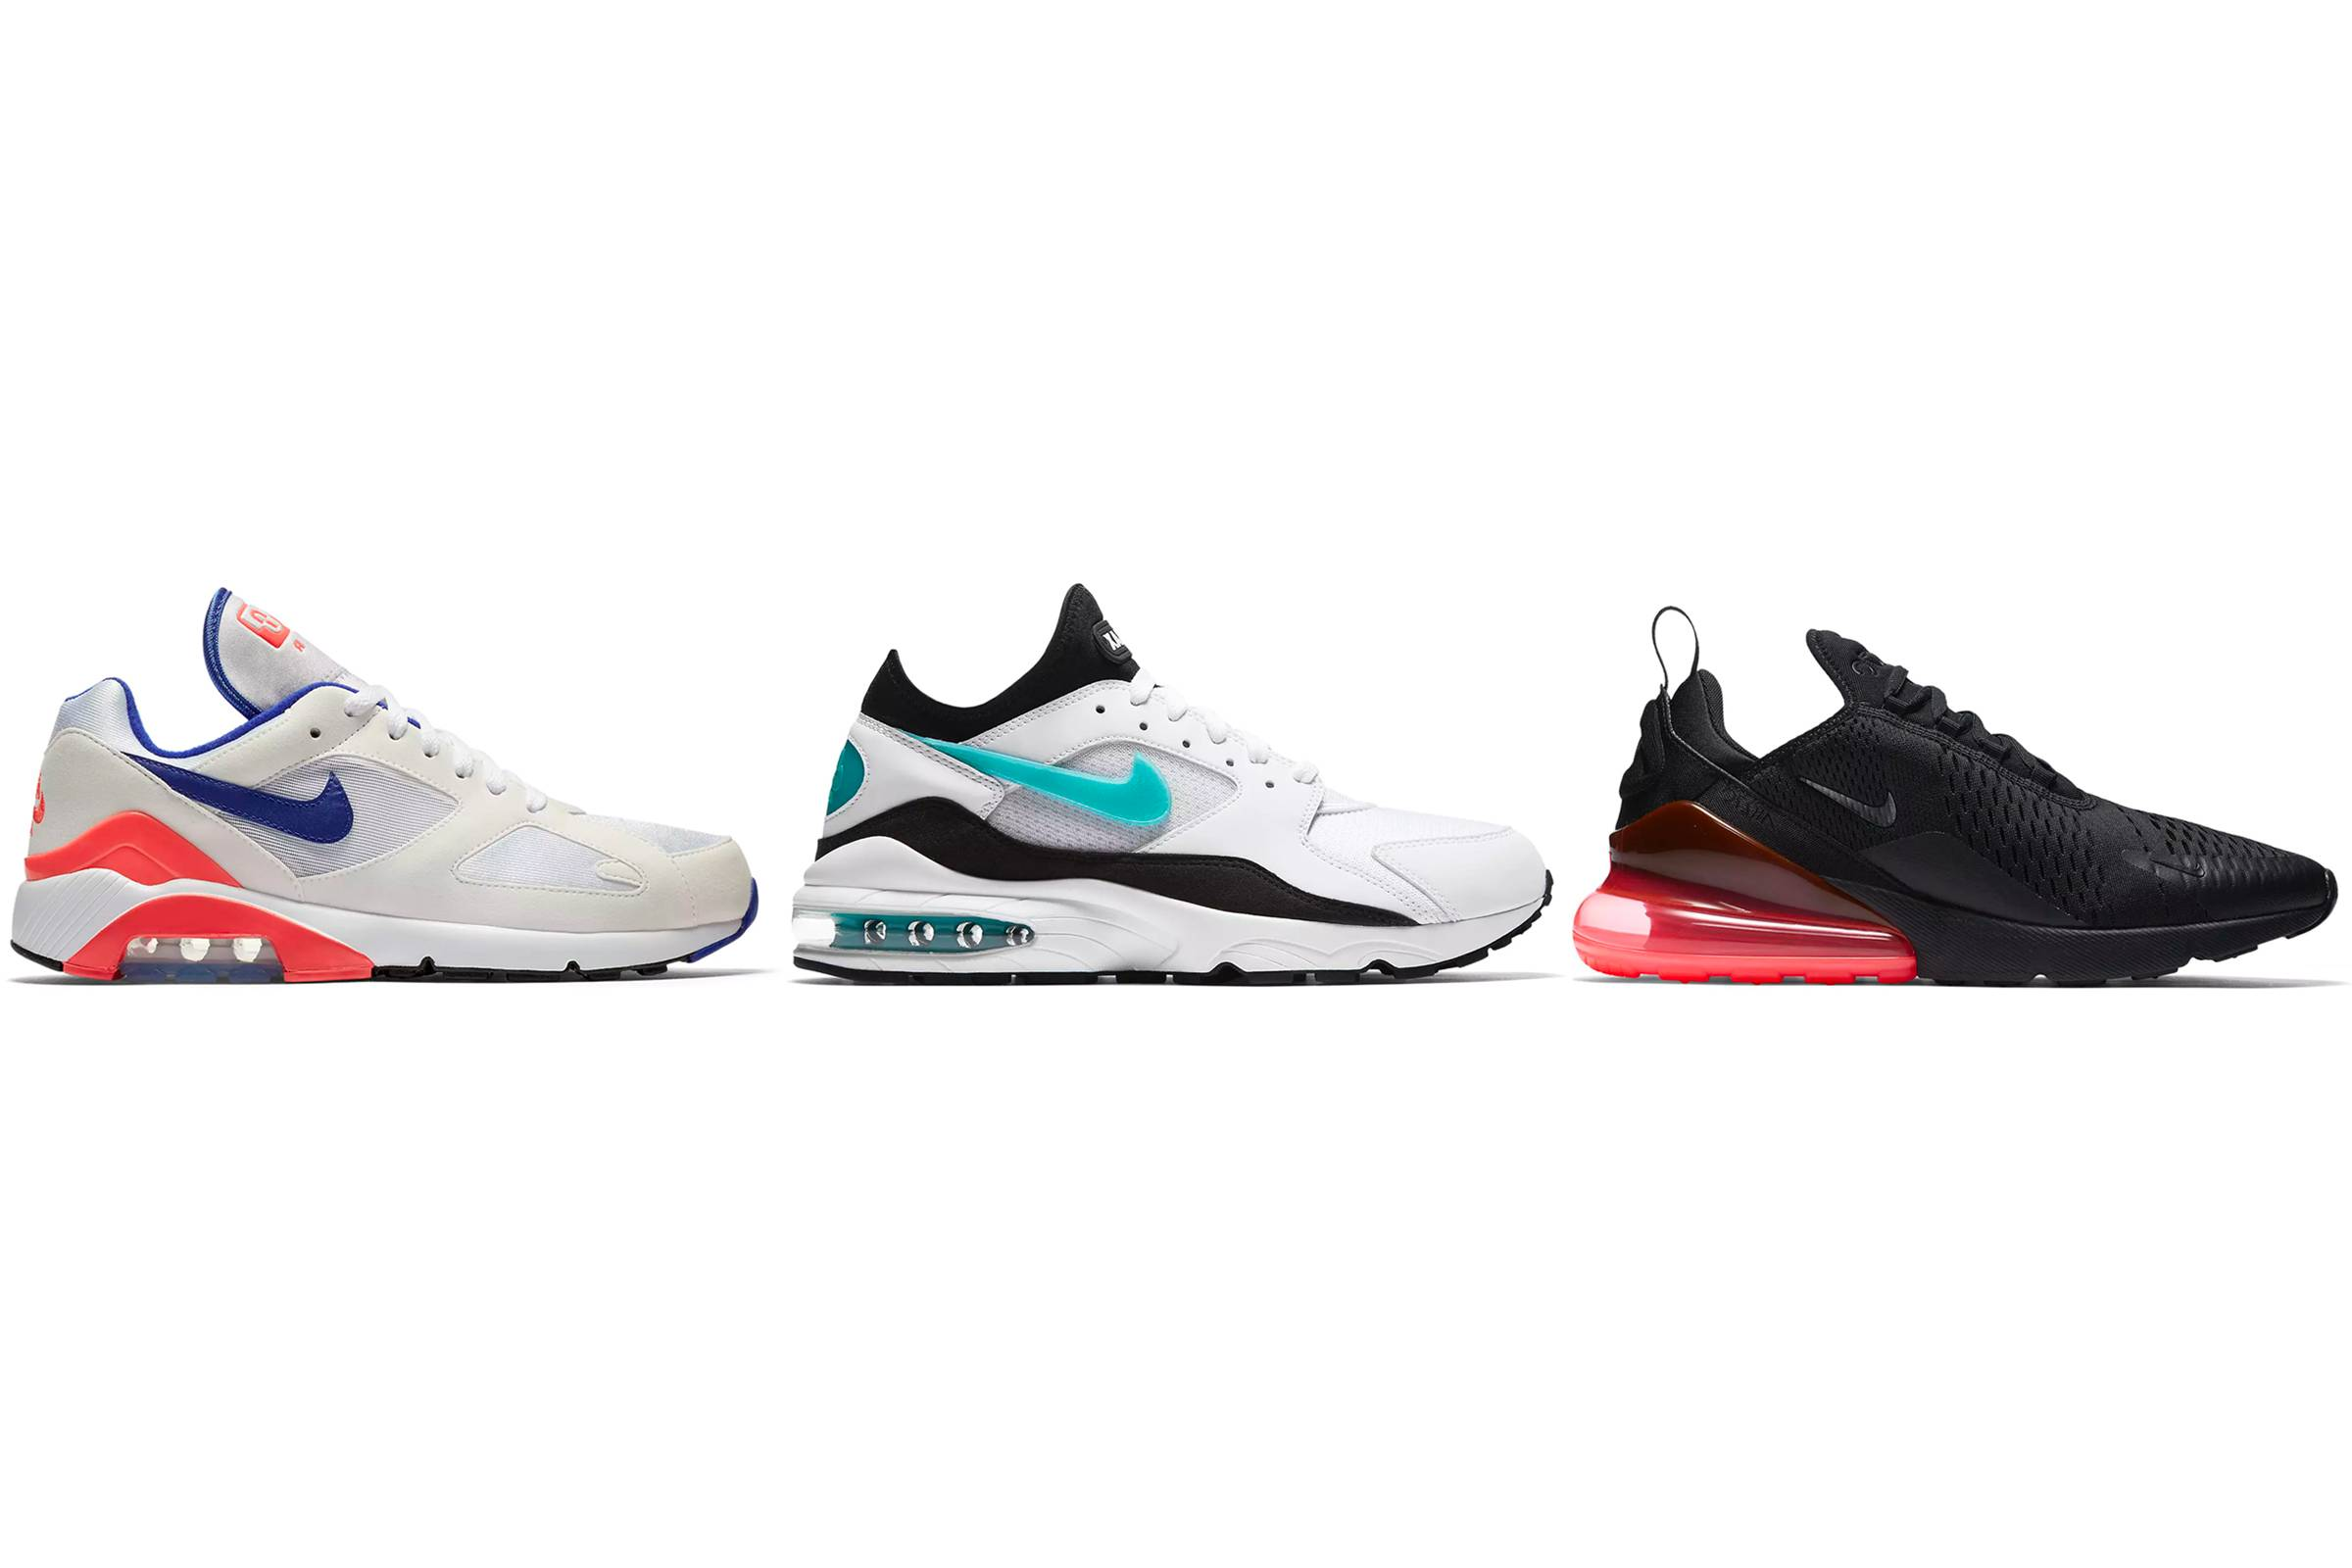 a8495c15c924 Degrees of Air  The Evolution of the Air Max Heel Unit - Air Max 180 ...